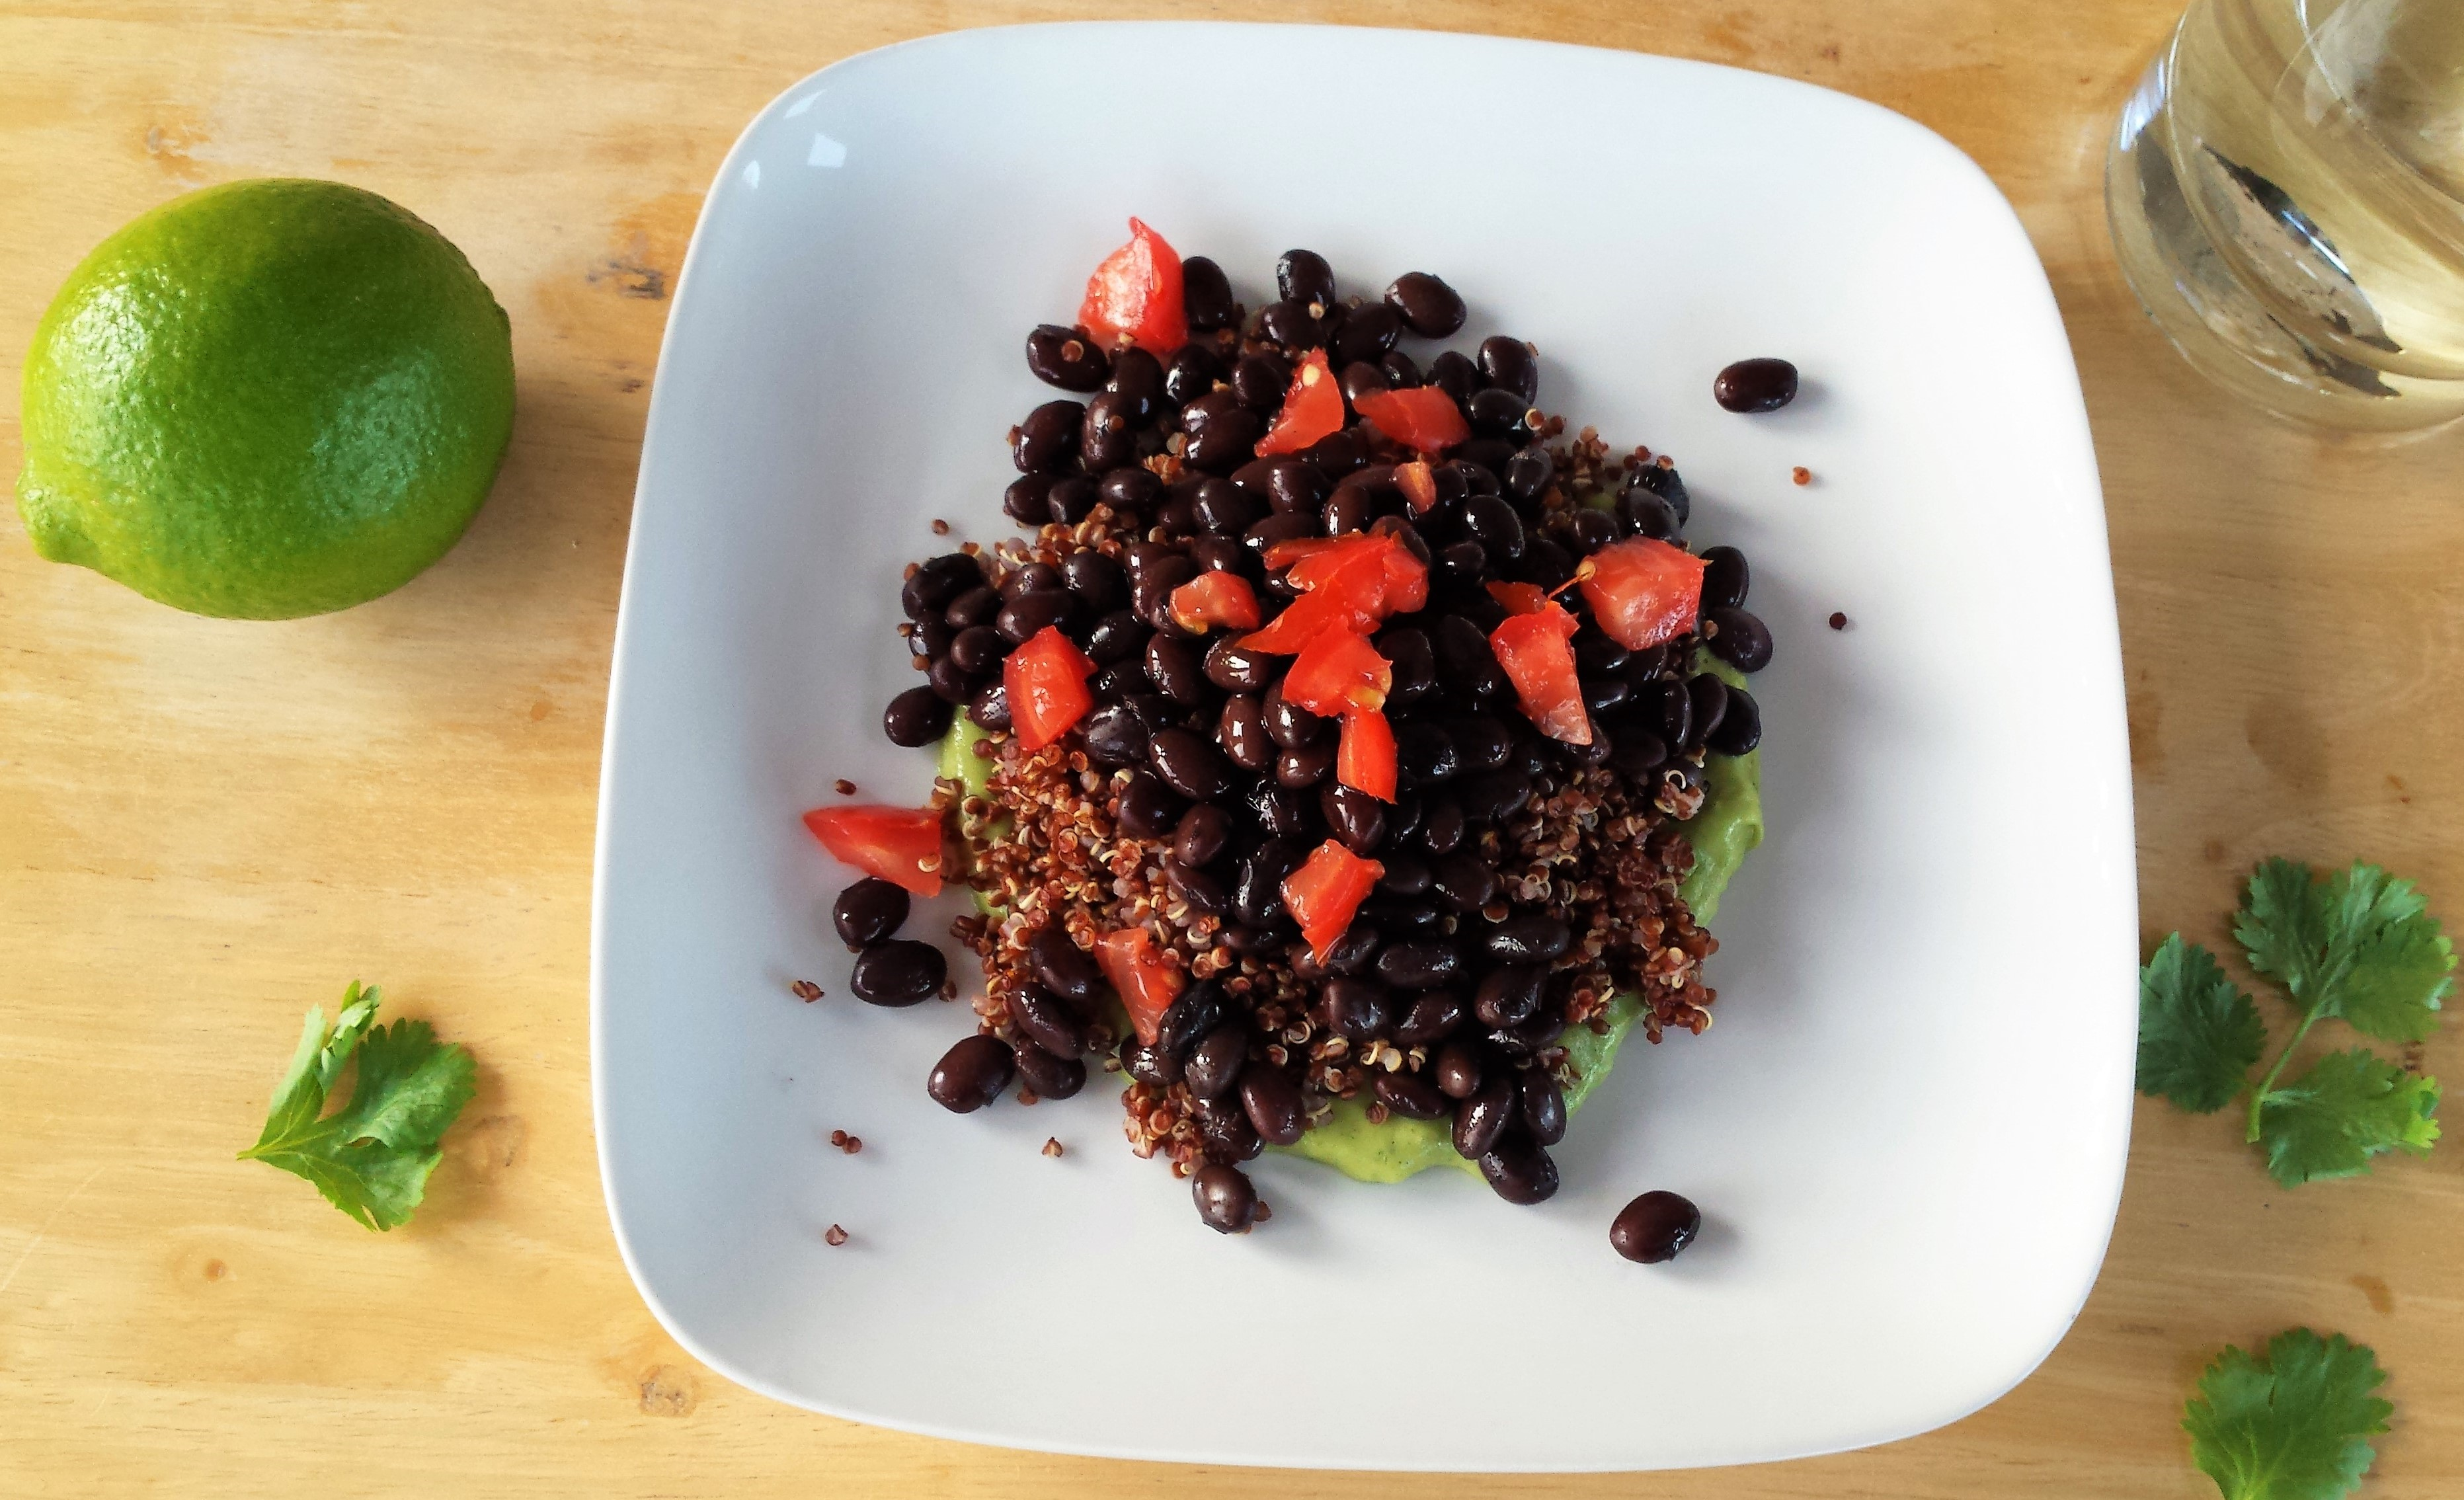 Quinoa and Black Beans with Avocado Cream Sauce